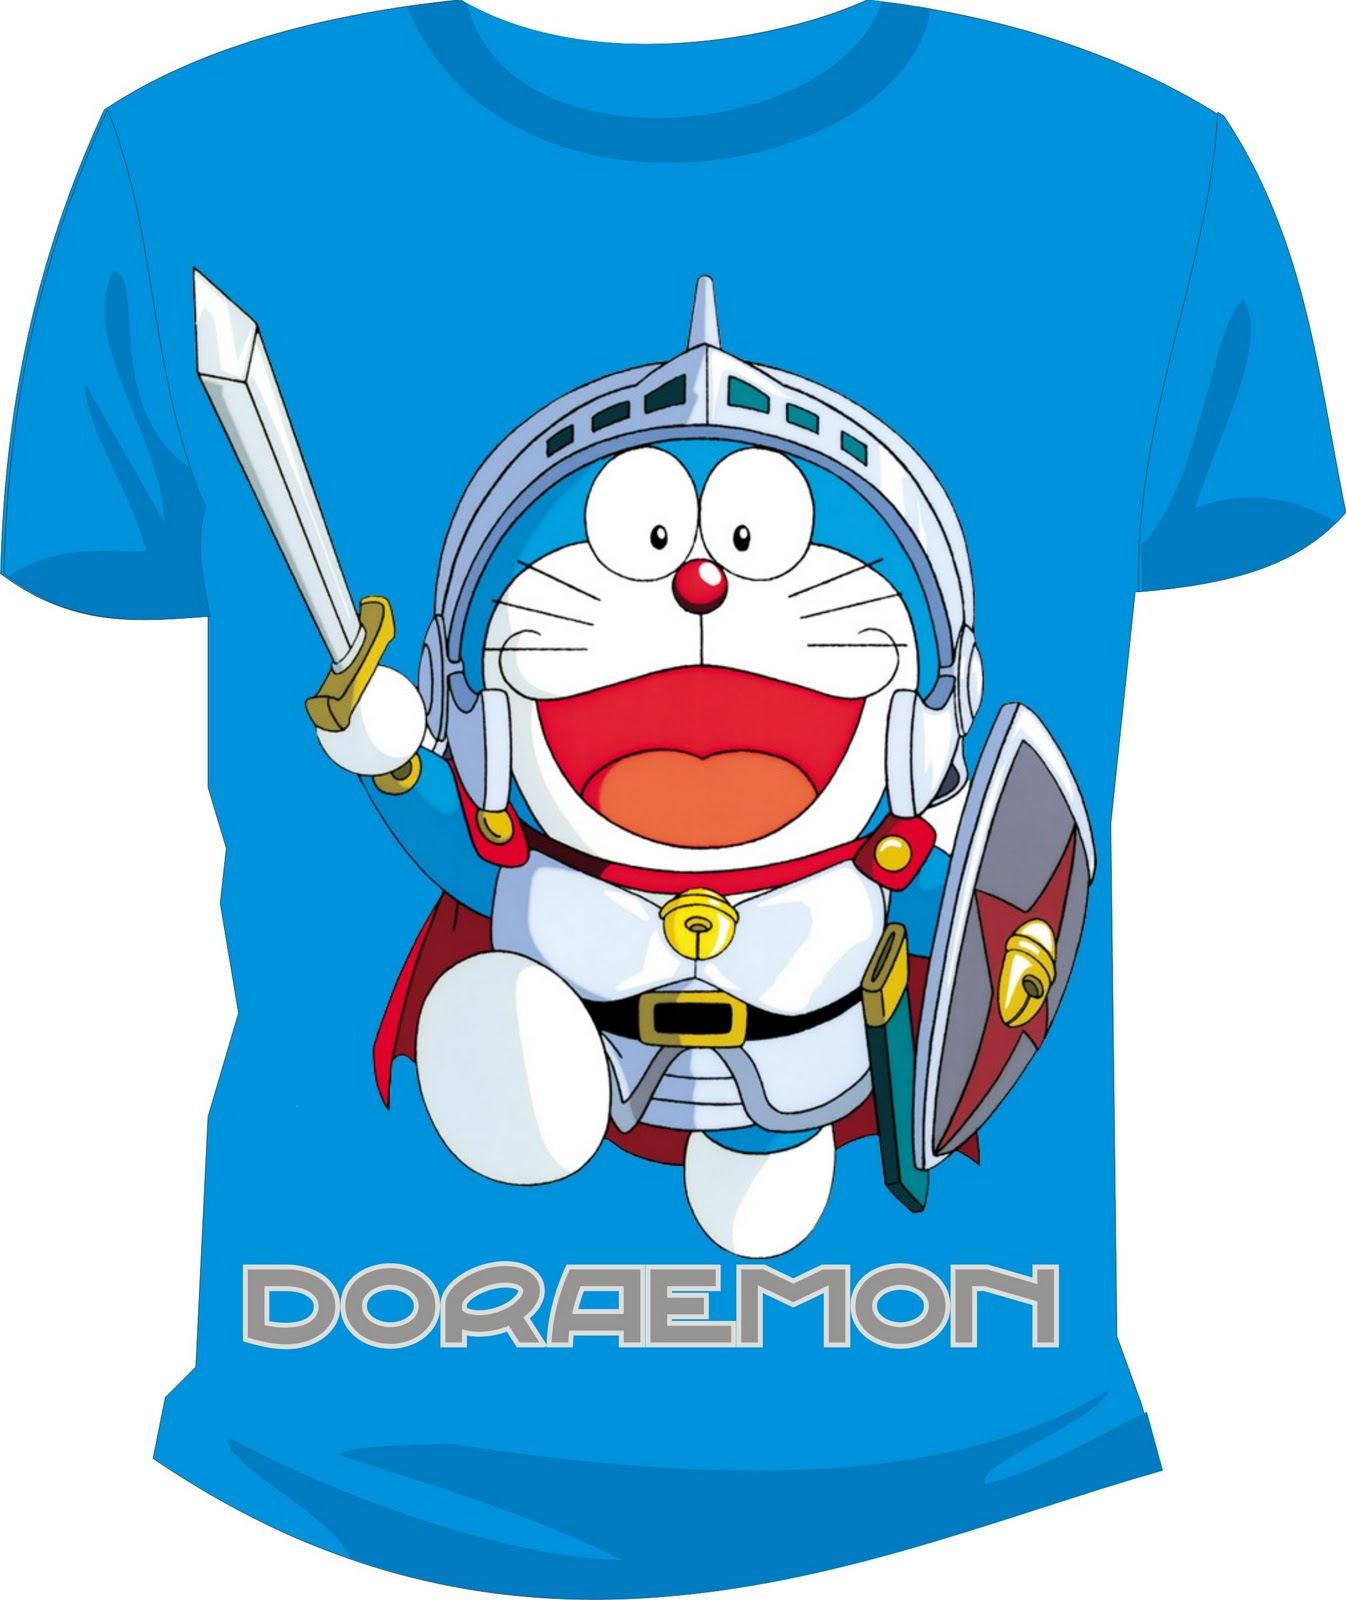 Doraemon Clothing